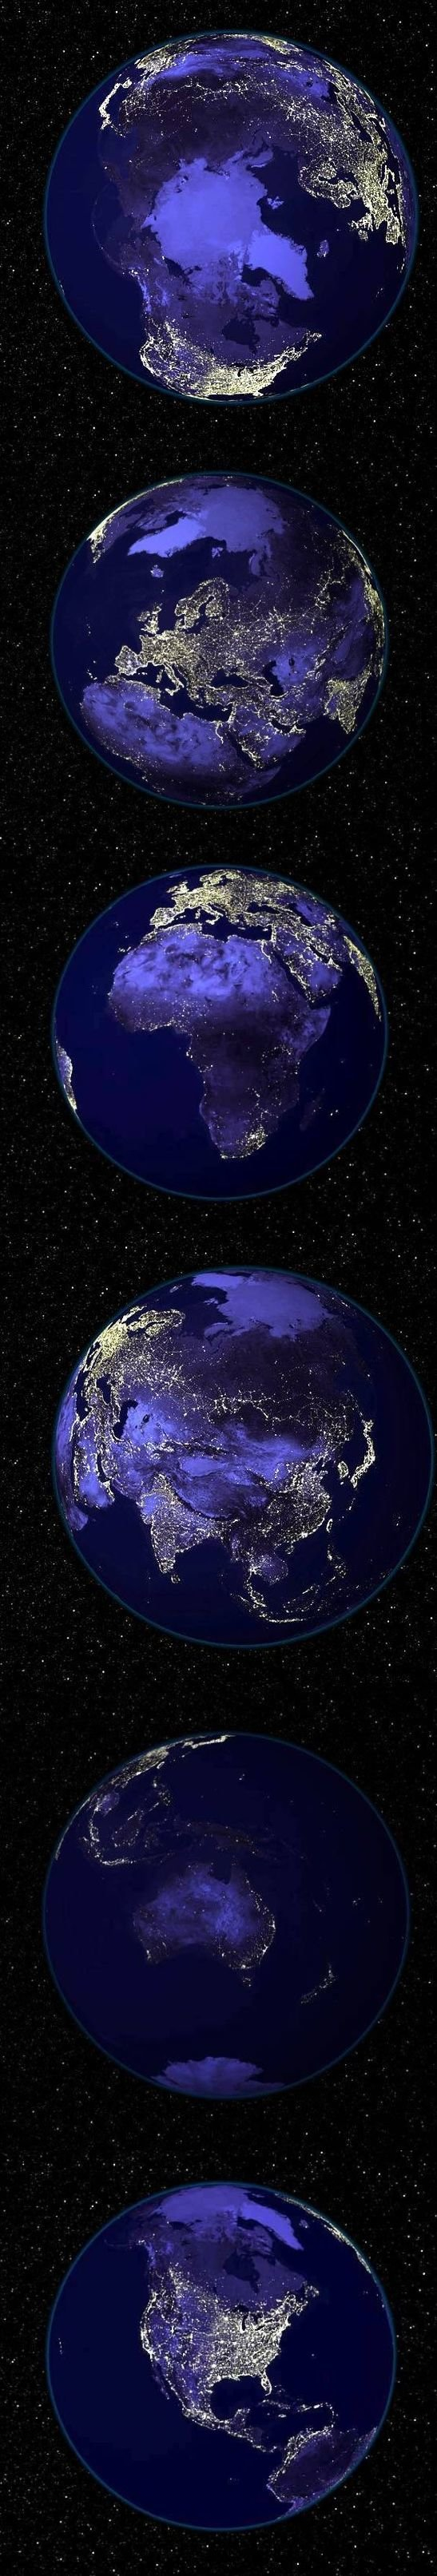 2525 2798 - earth at night